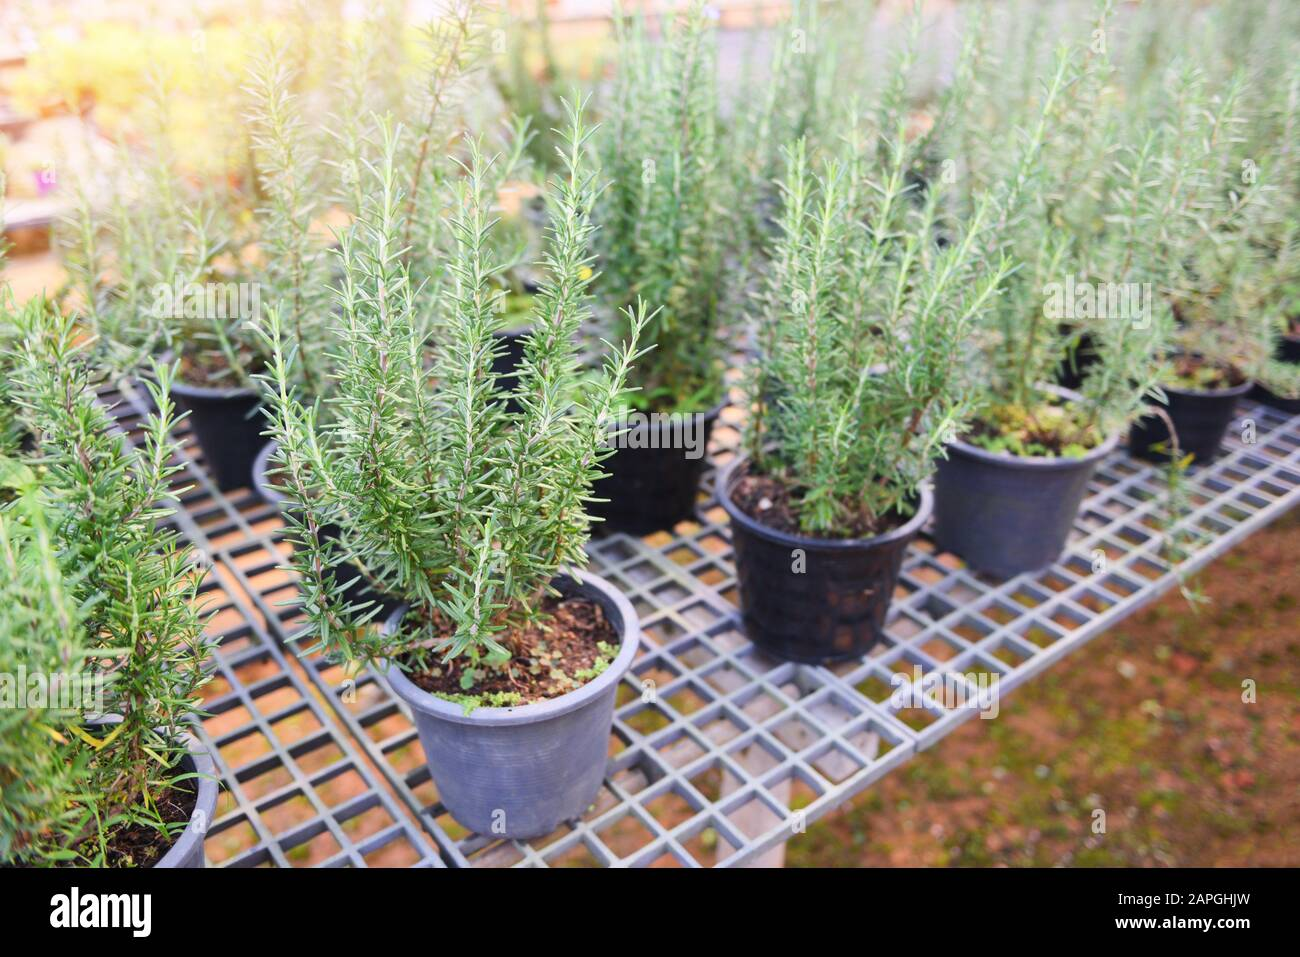 Rosemary Plant Growing In The Garden For Extracts Essential Oil